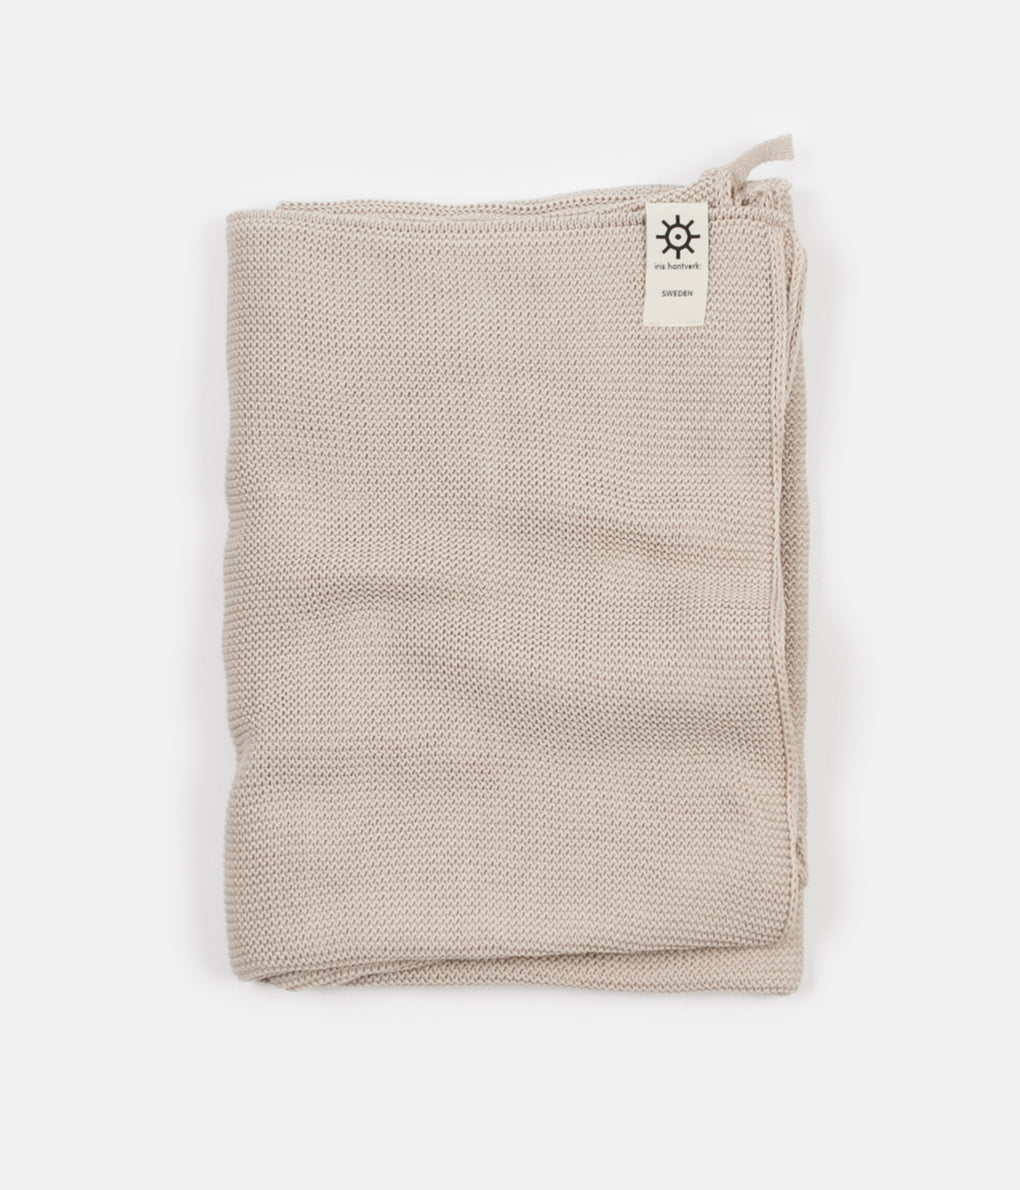 Iris Hantverk Bath Towel - Natural